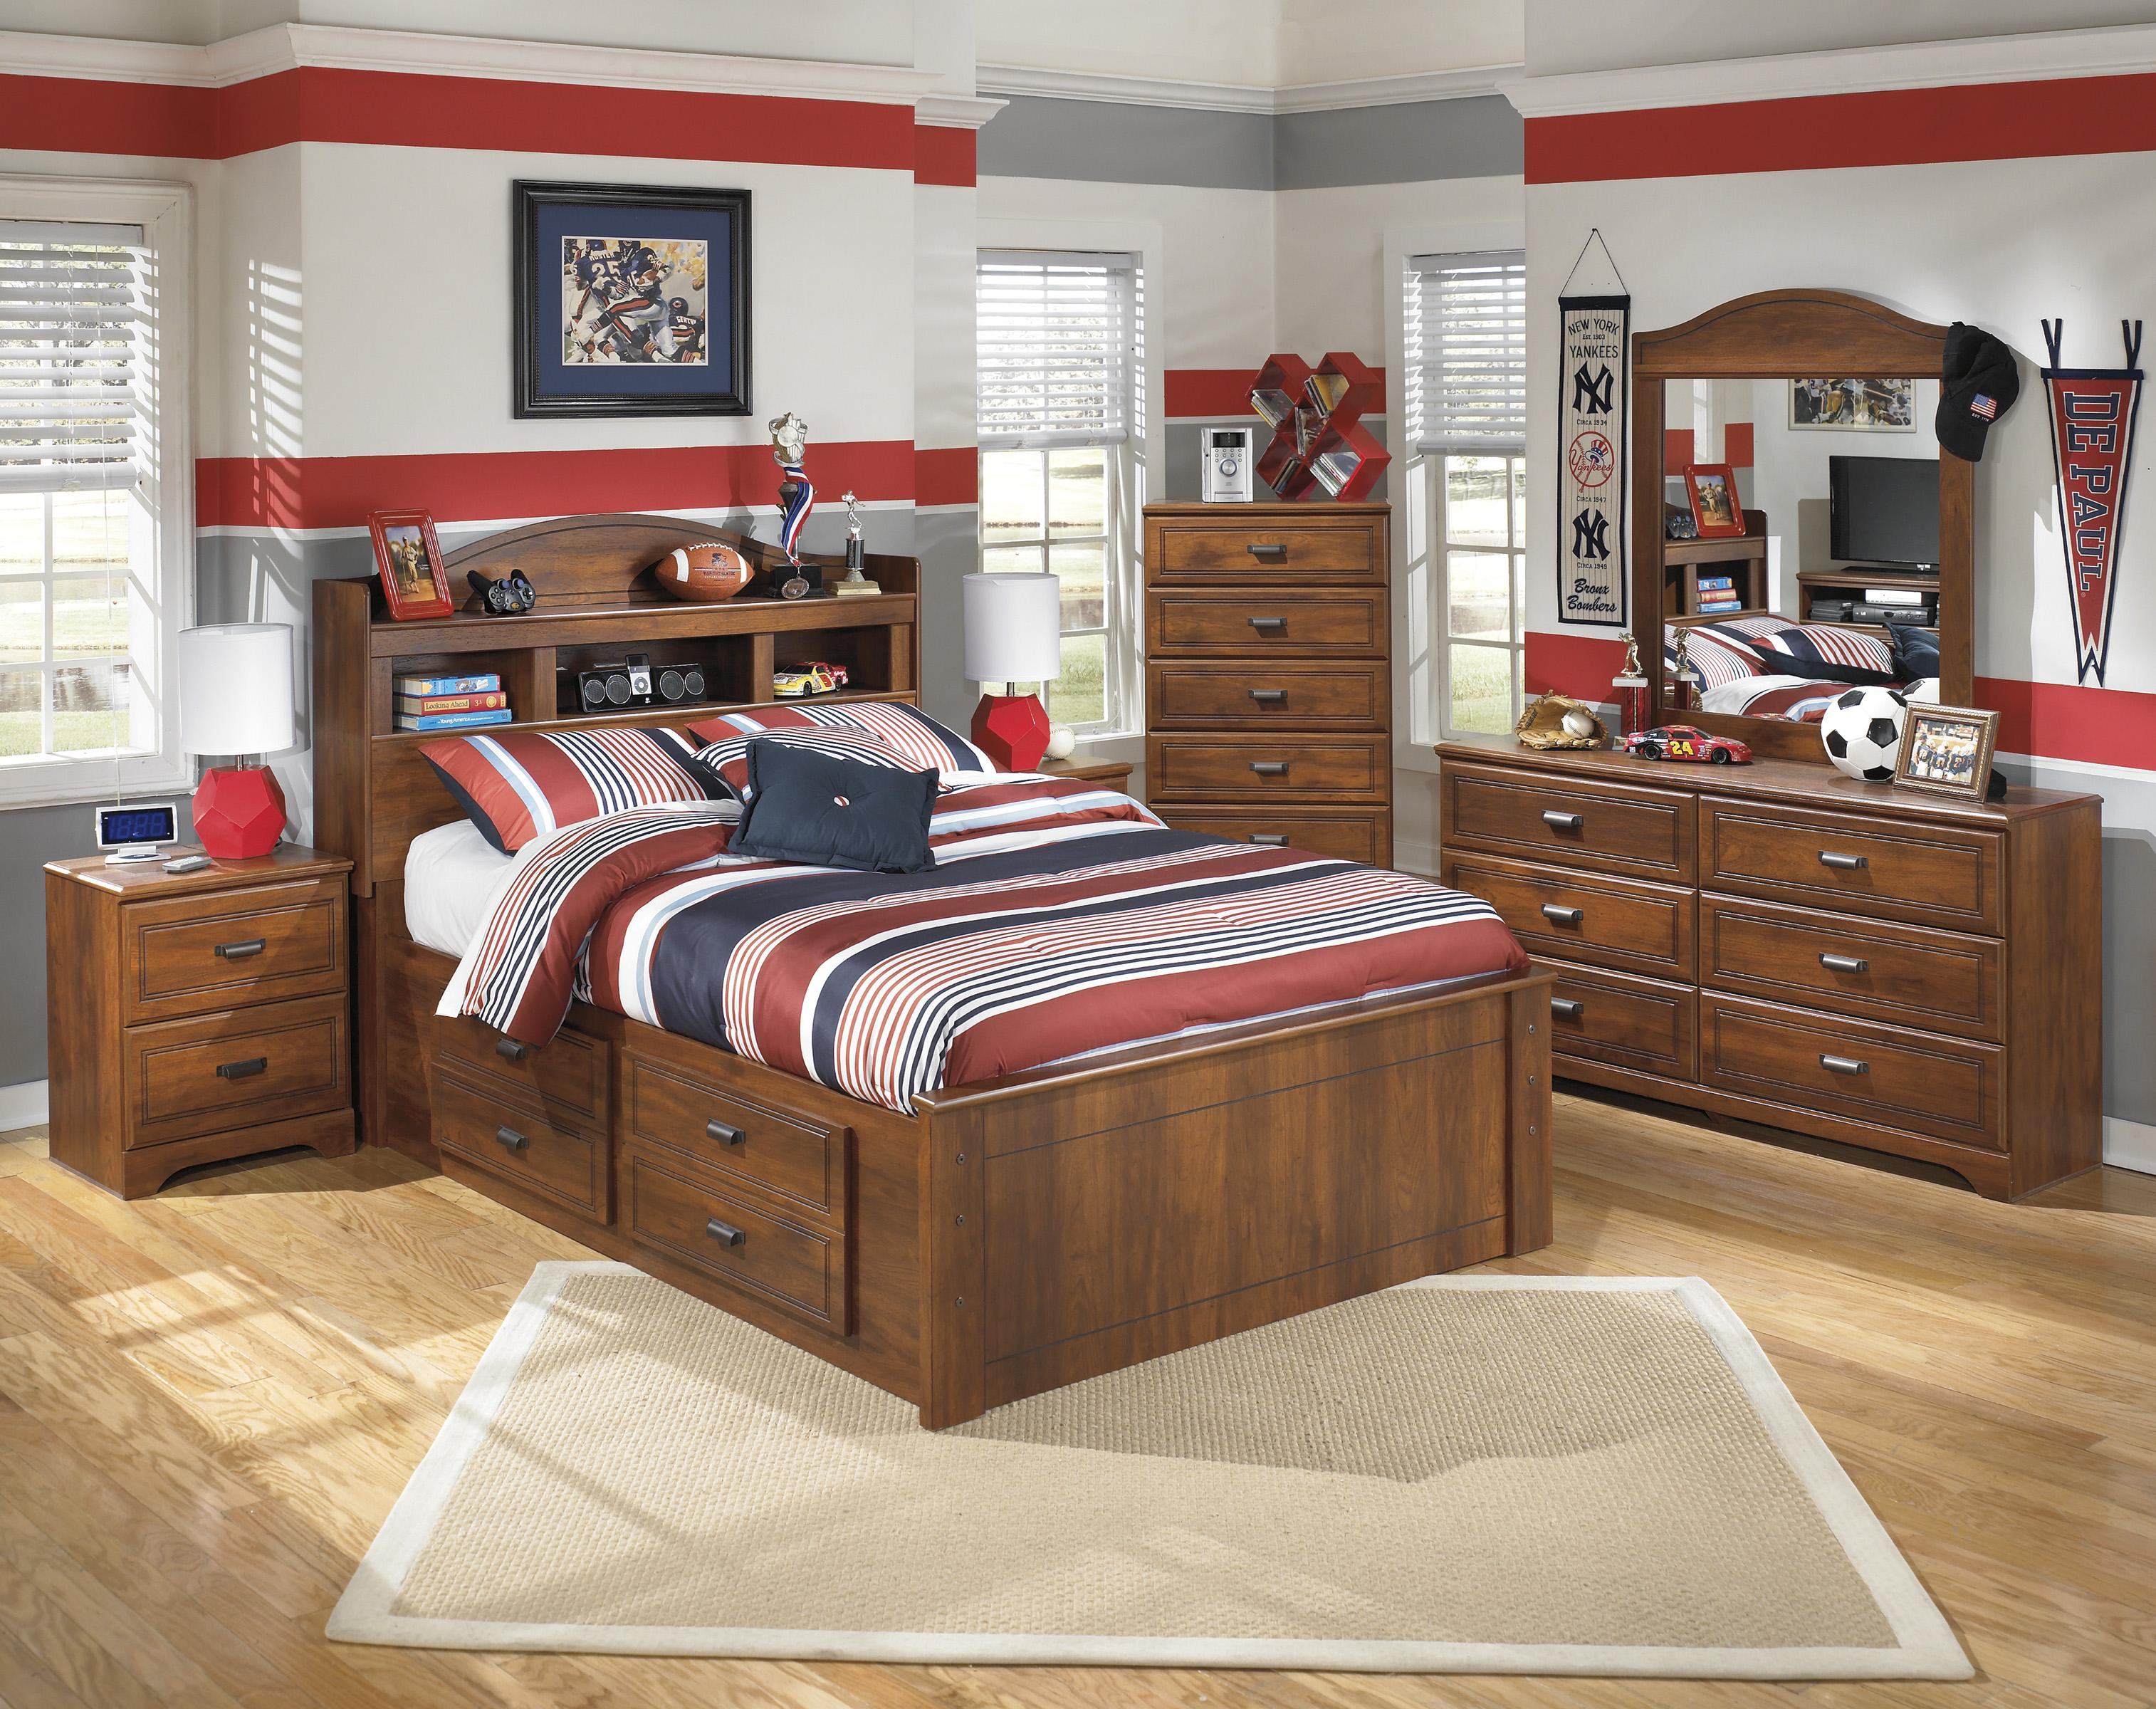 set bedroom bed full elkton